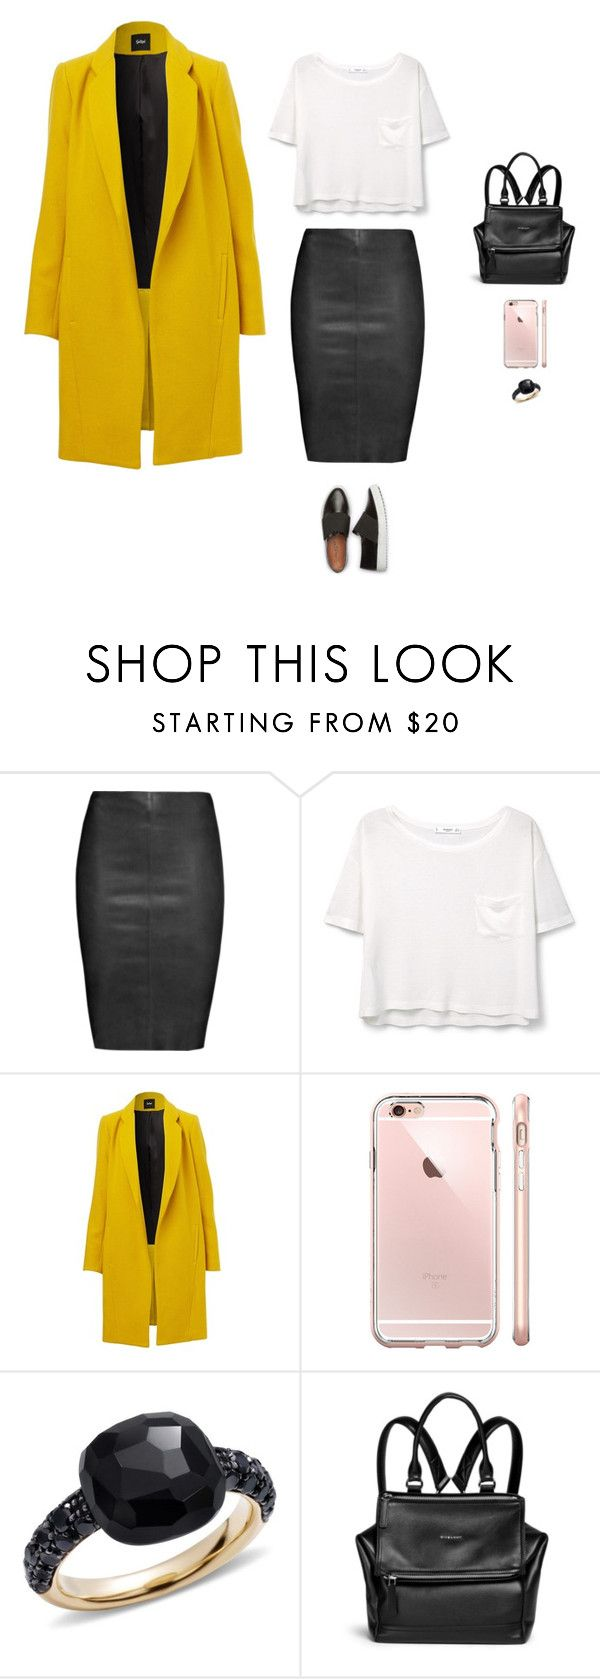 """""""Say a prayer for me"""" by justyna-tita-witkowska ❤ liked on Polyvore featuring Jitrois, MANGO, Pomellato, Givenchy, look, Leather and classy"""